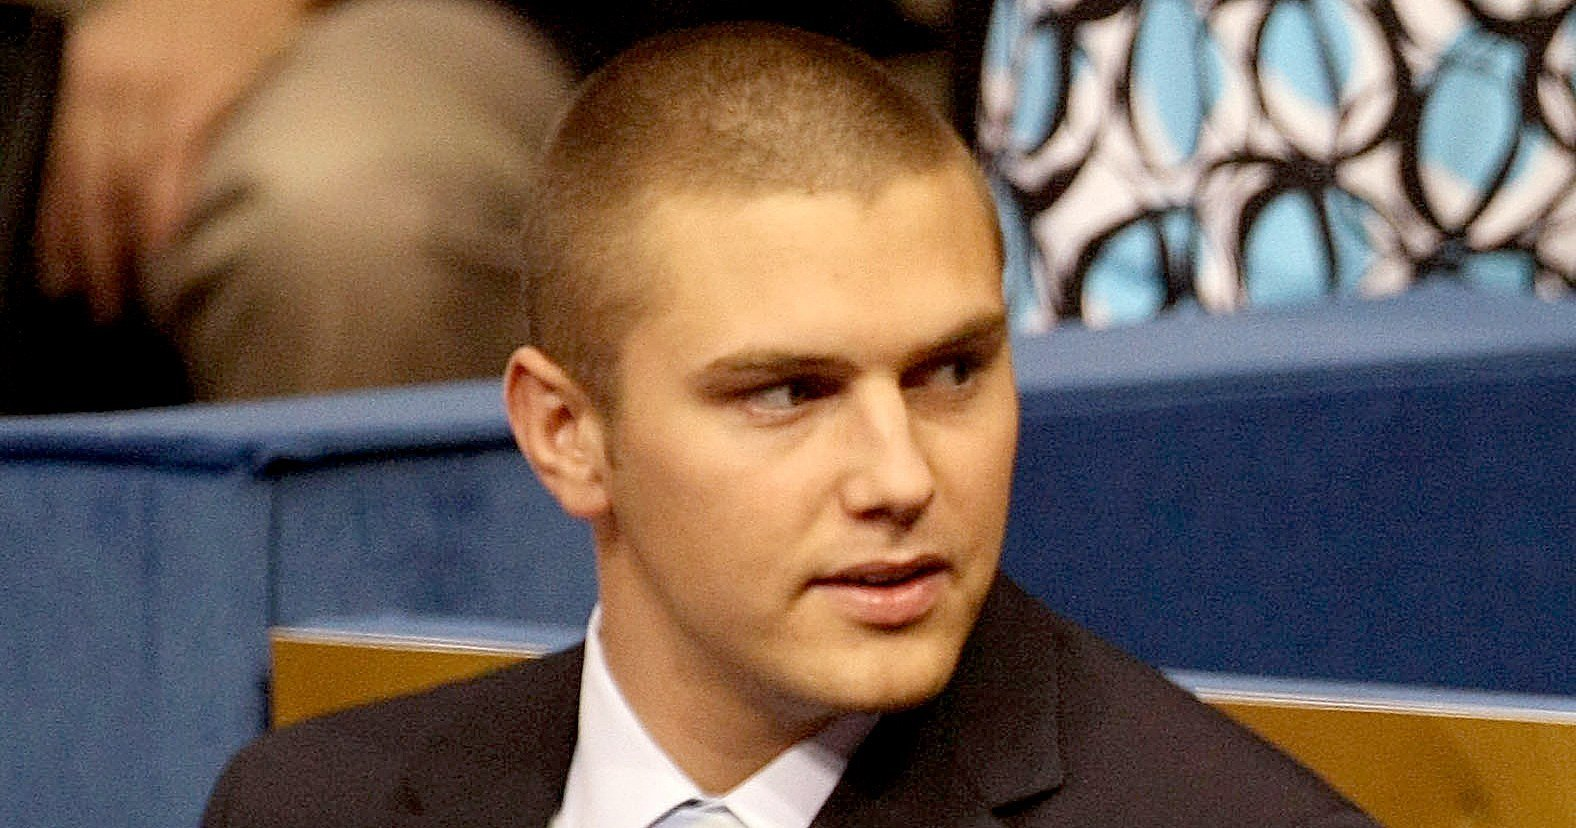 Sarah Palin's Son Track Checks in to Alaska Halfway House After Assault Arrests